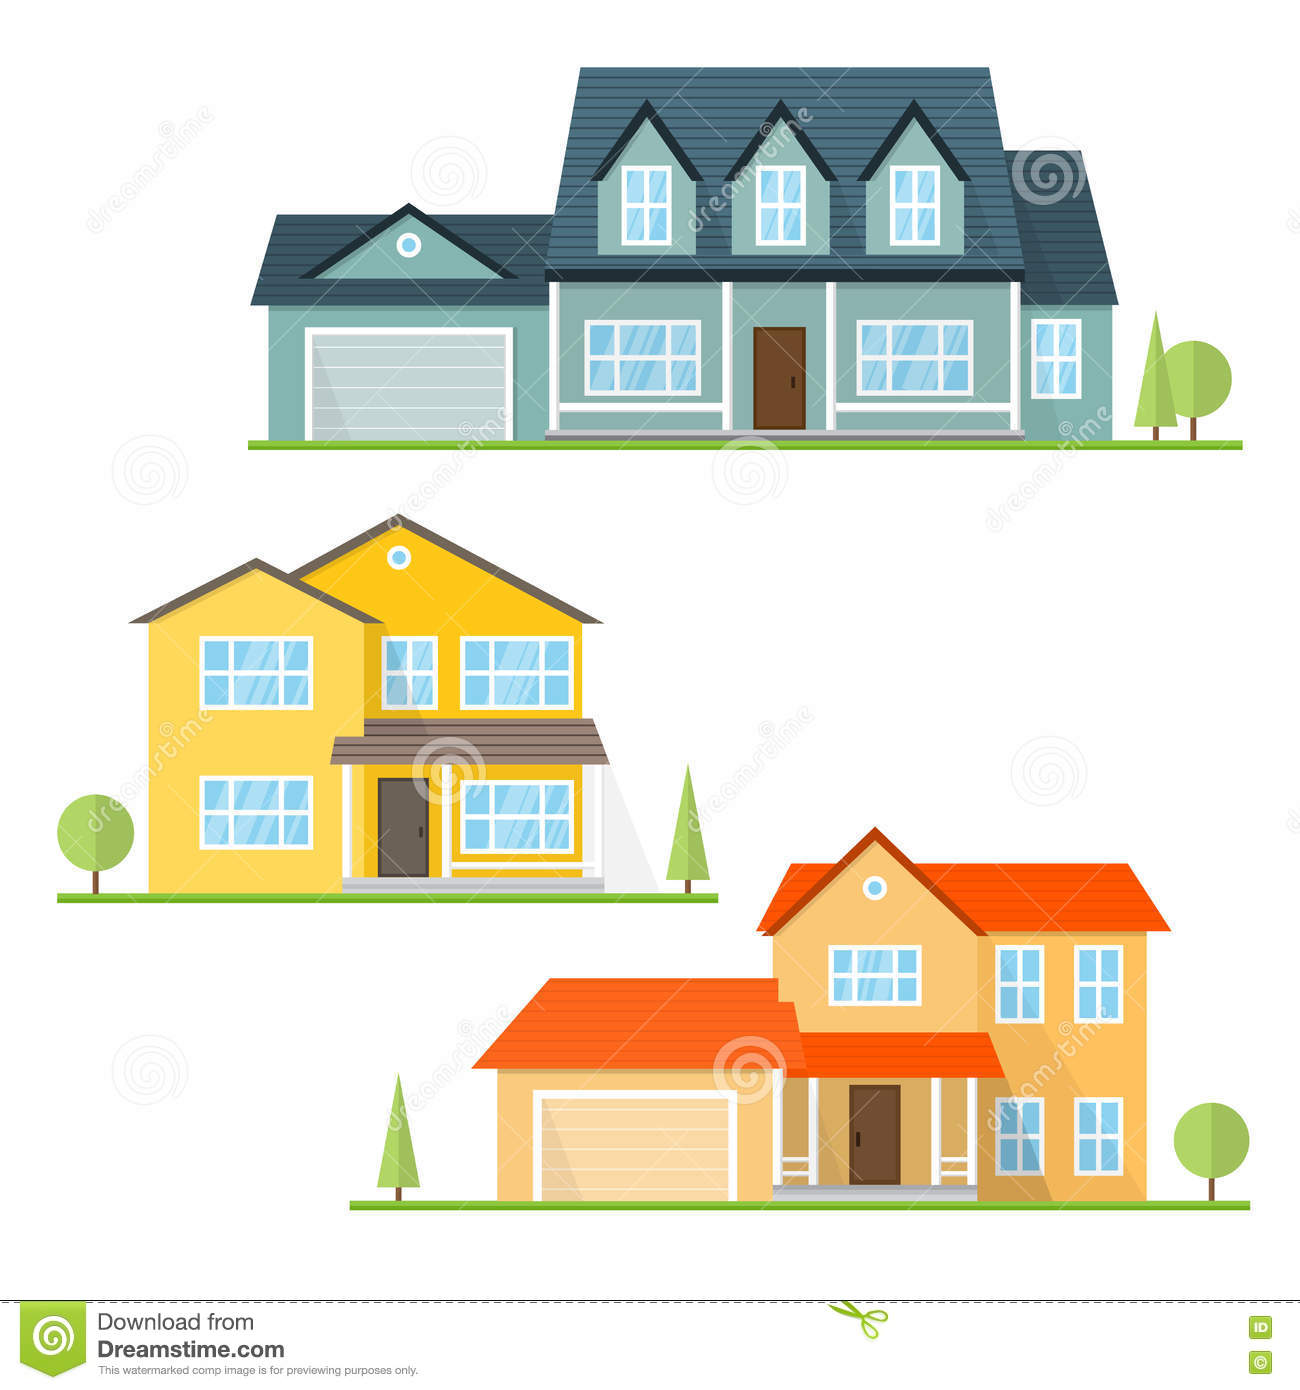 House design application - Royalty Free Vector